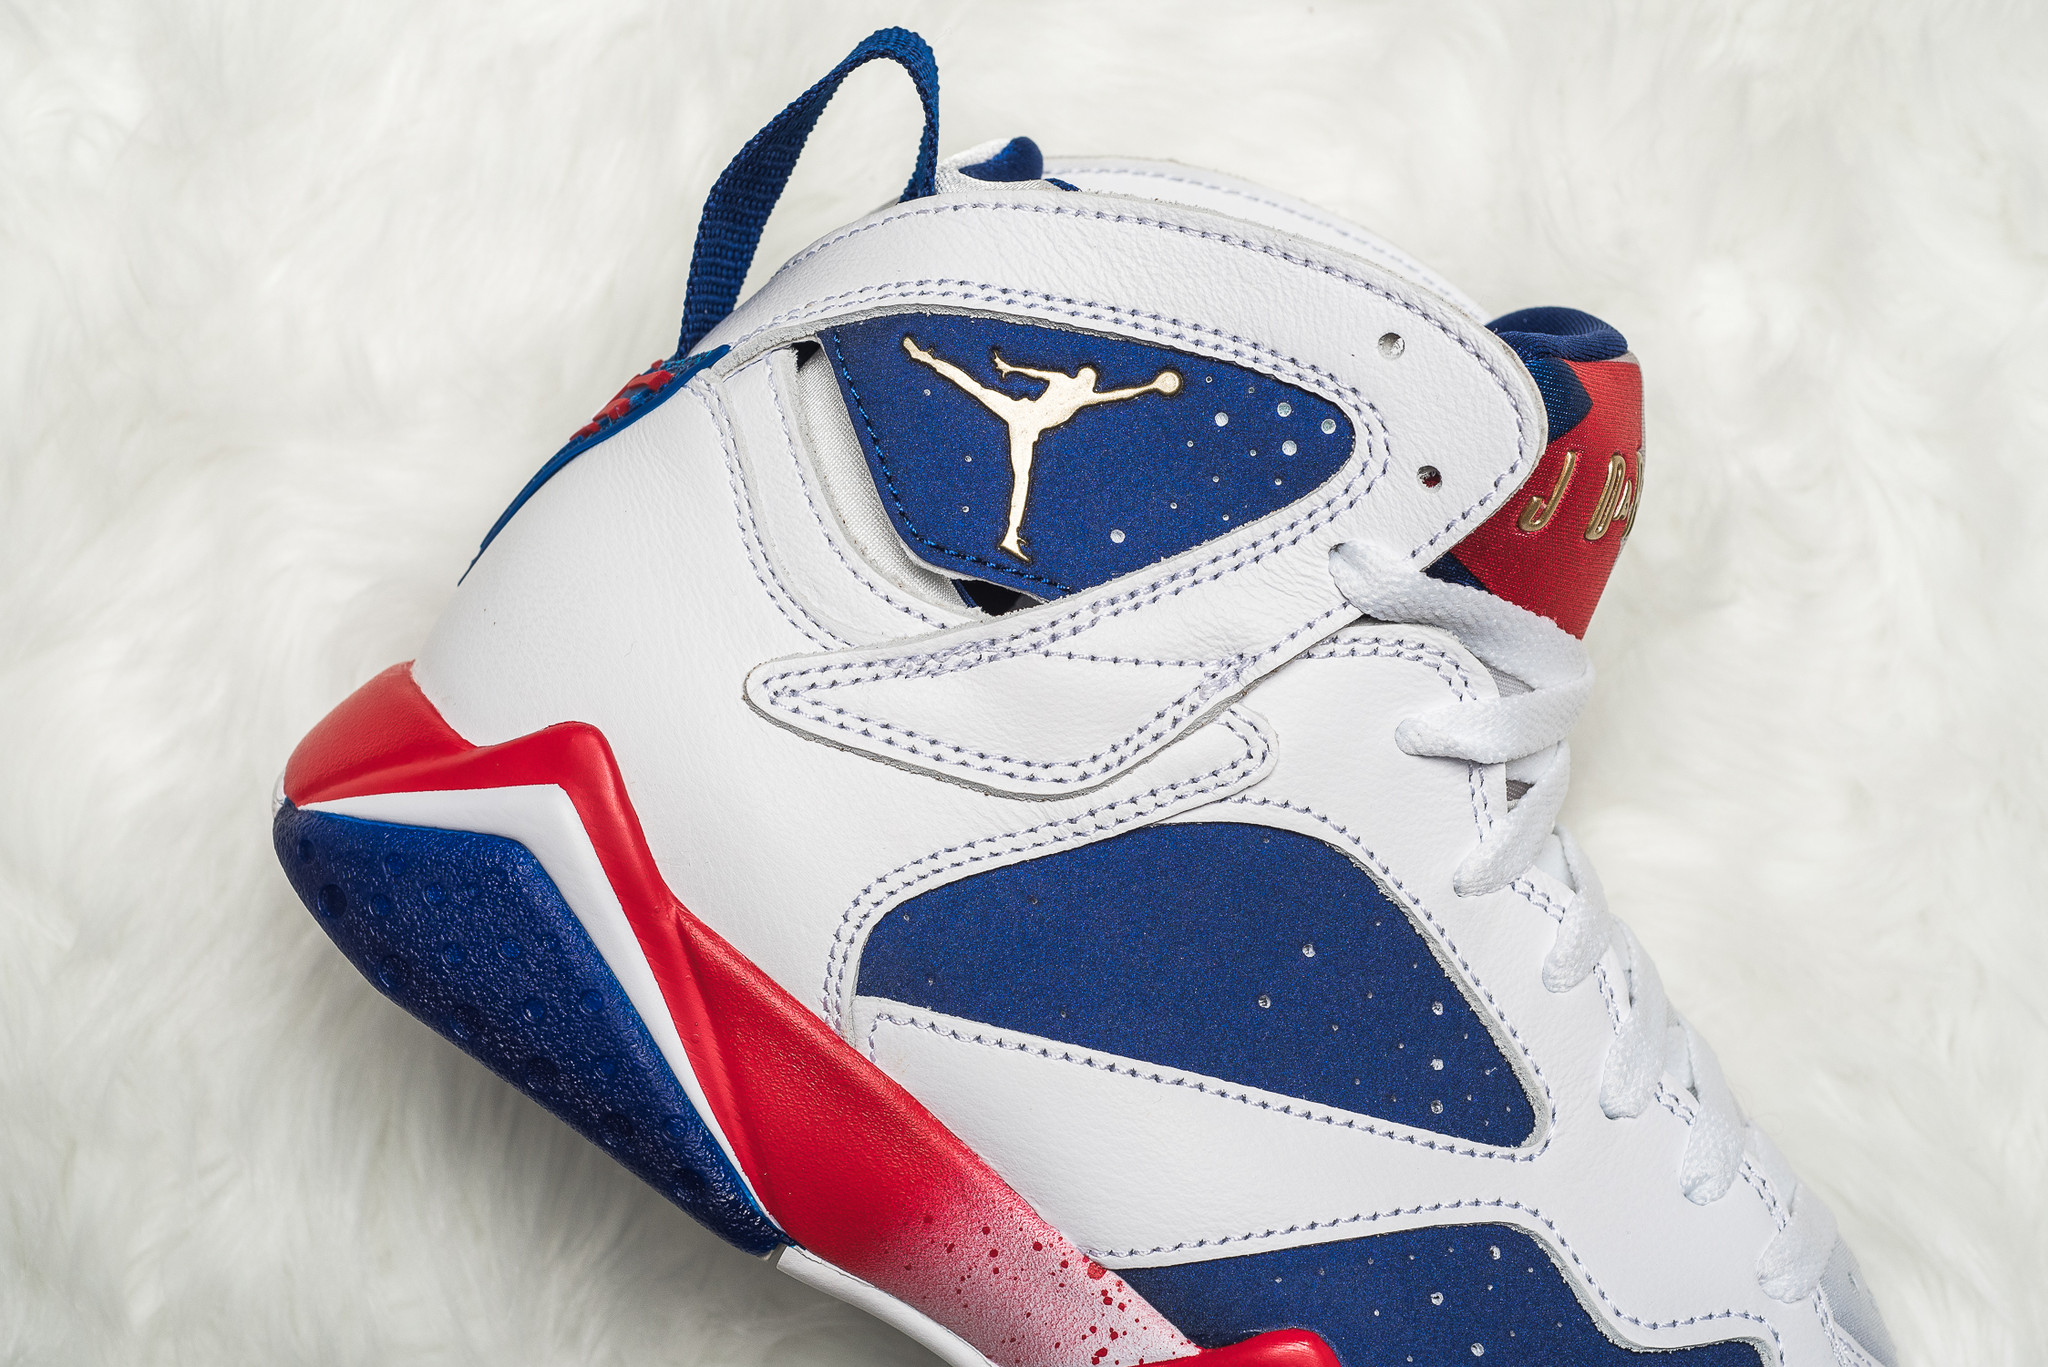 """Air Jordan 7 """"Olympic Alternate"""" Color  White Metallic Gold Coin-Deep Royal  Blue-Fire Red-Lite Iron Ore Style Code  304775-123. Release Date  August 6 eb508f1ec171"""